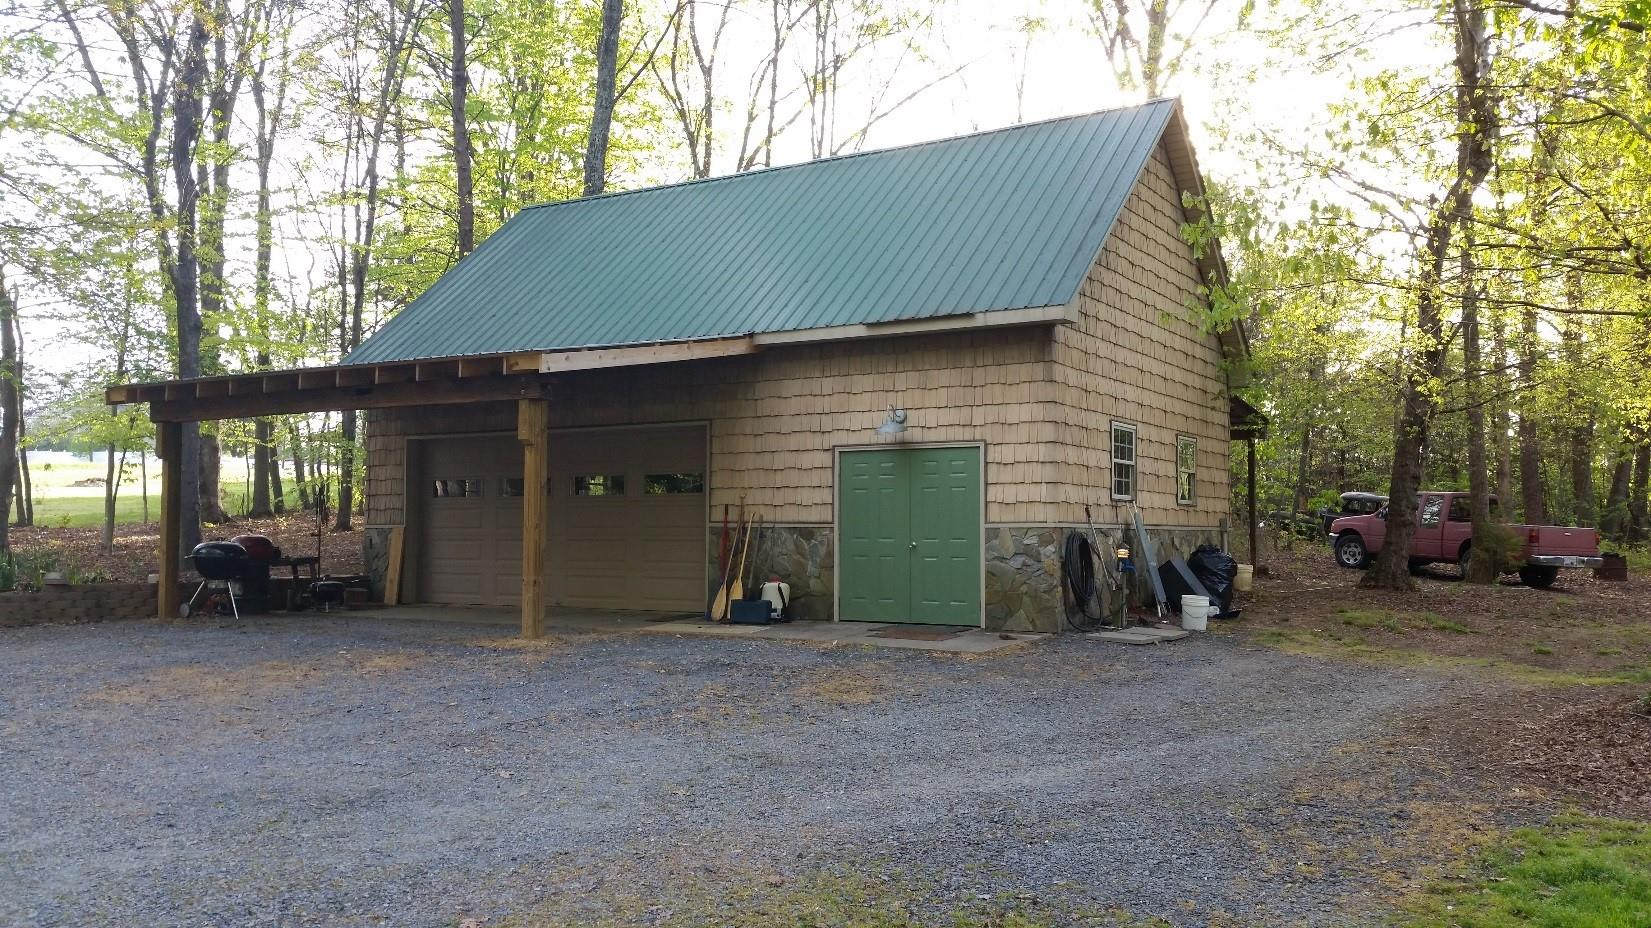 randolph county rental, country home for rent in randleman, 2 bedroom in randleman for rent